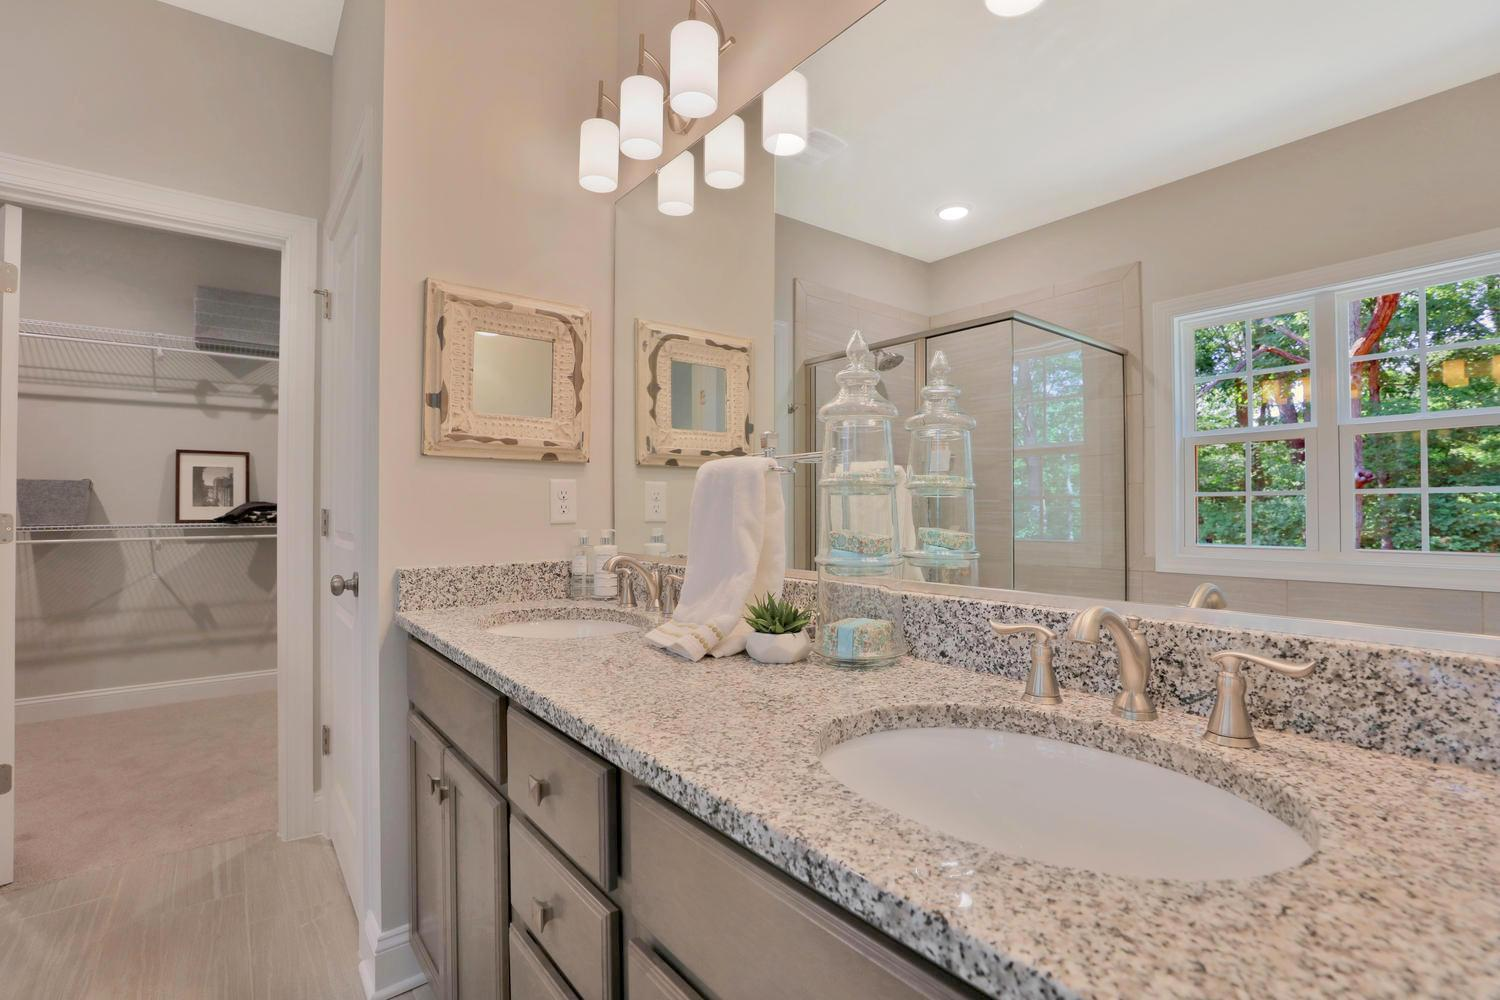 Bathroom featured in the Amelia By Main Street Homes in Richmond-Petersburg, VA